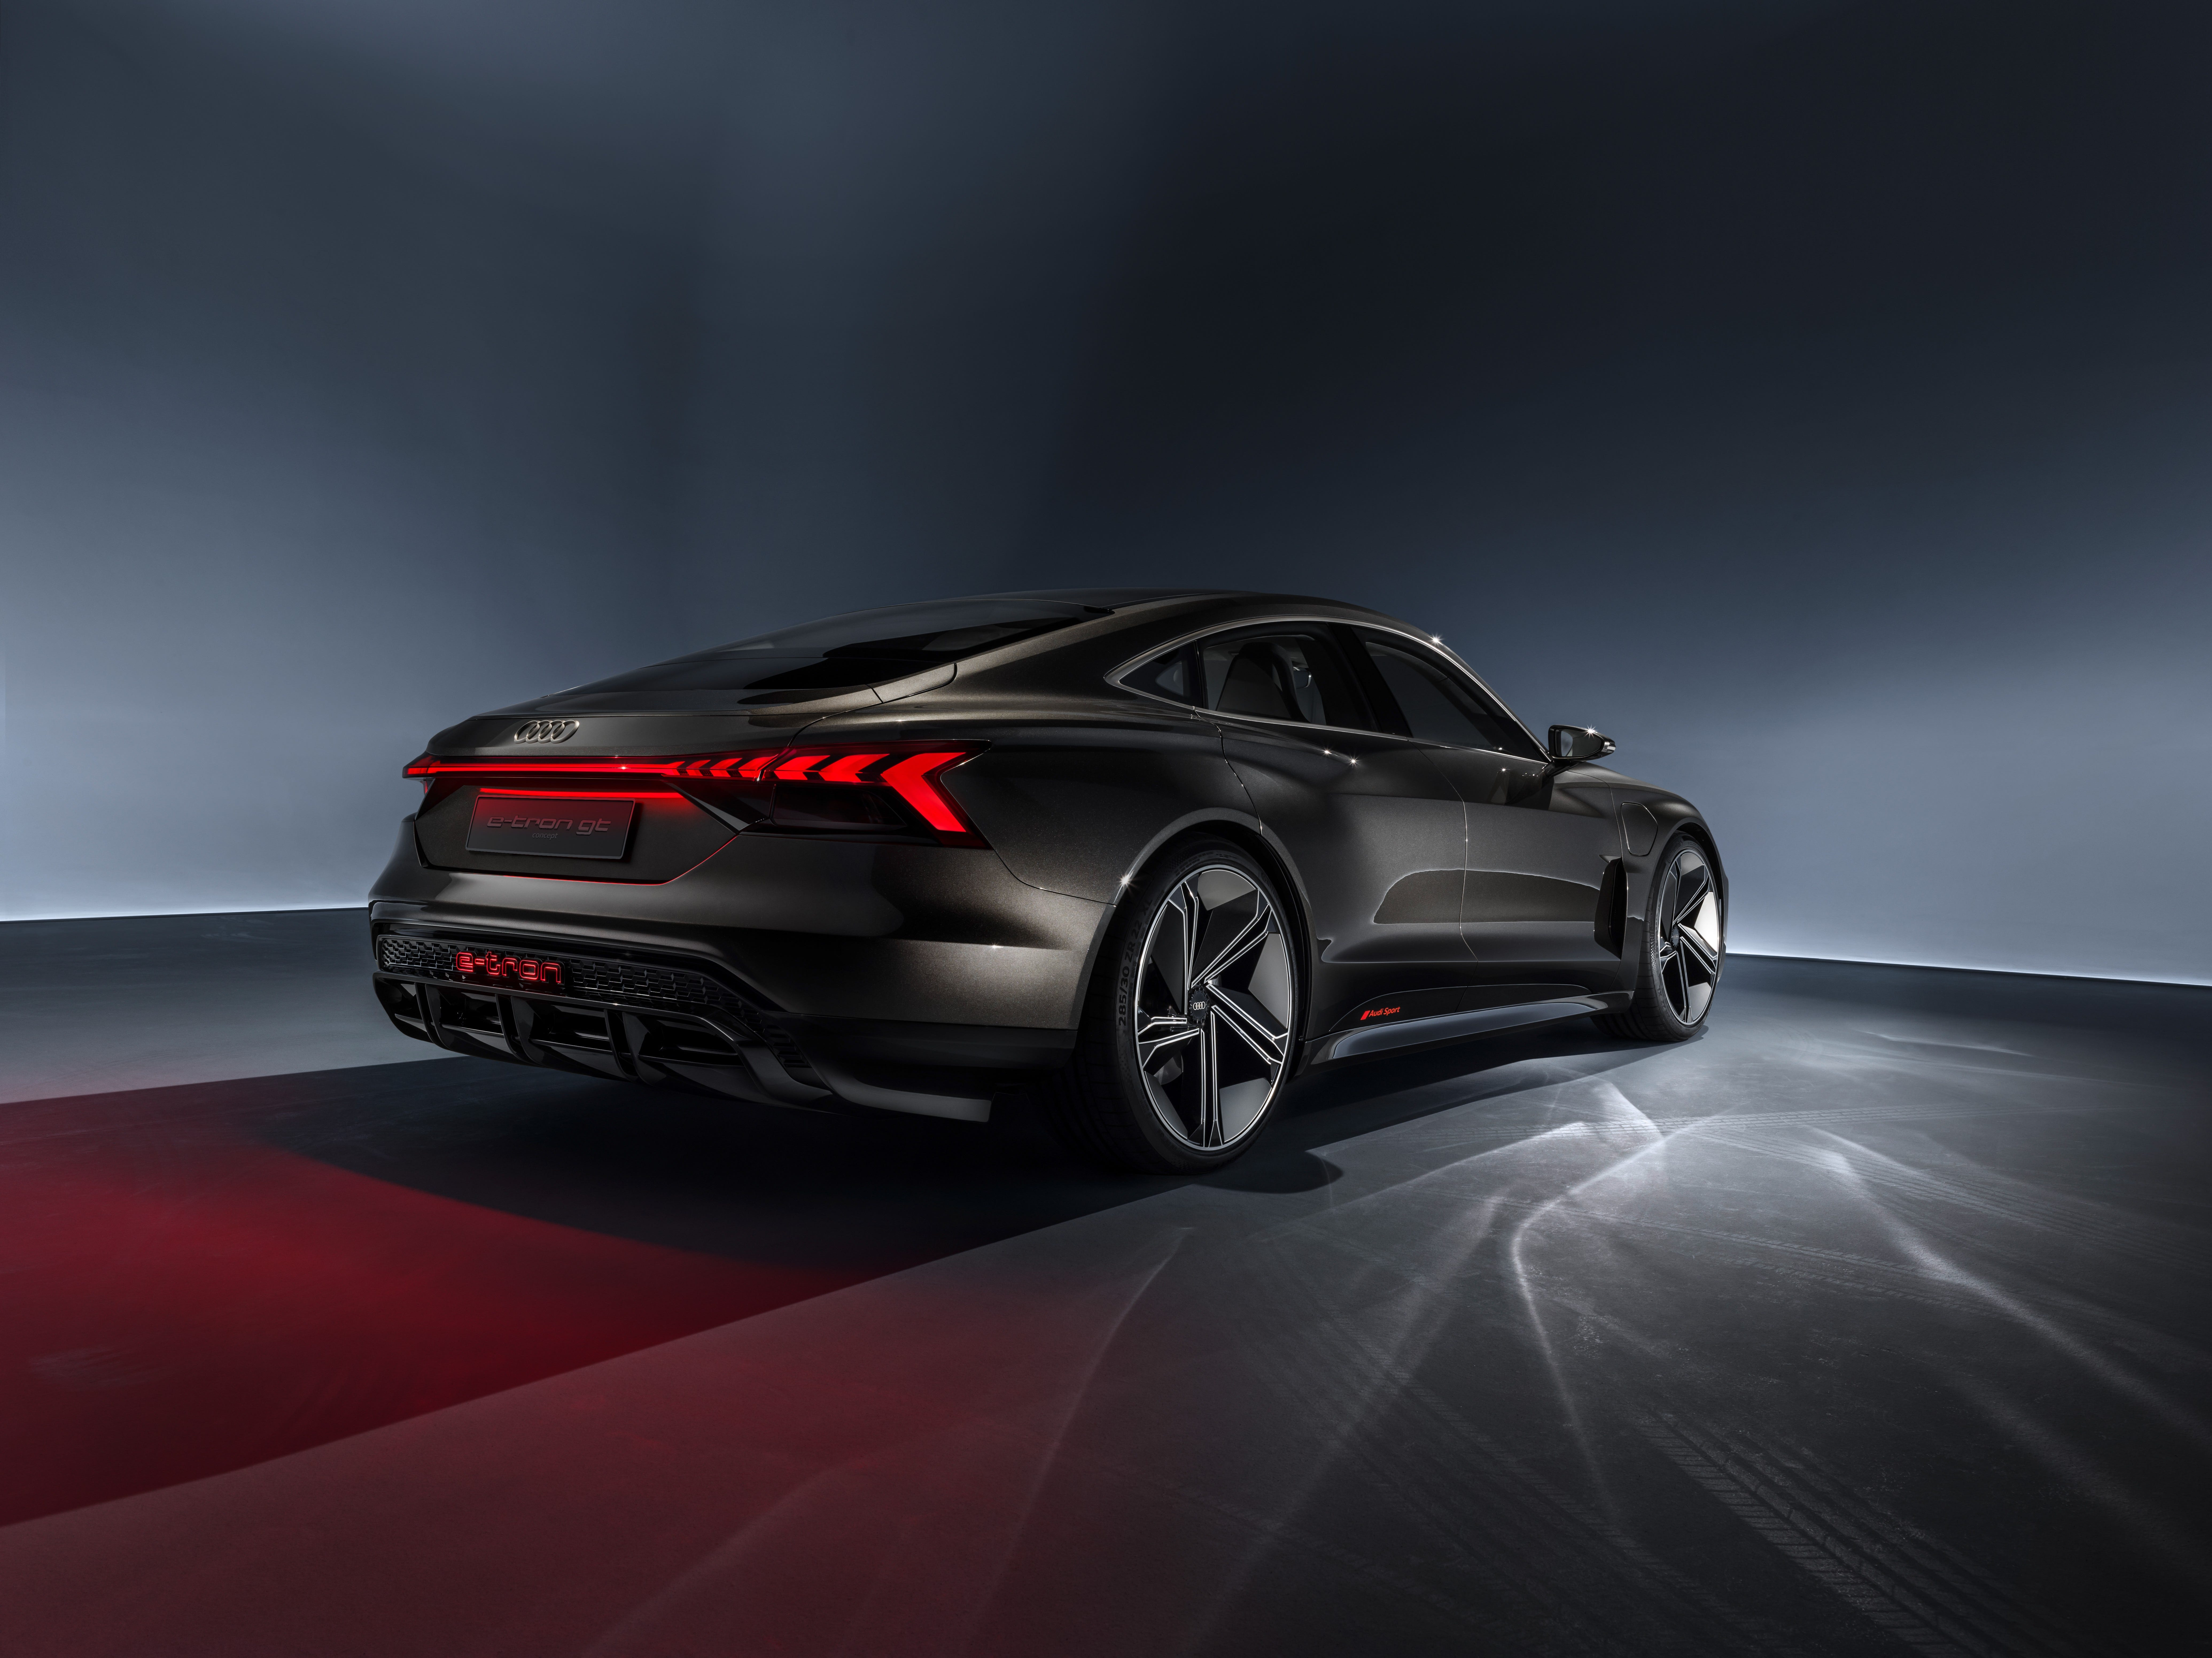 The battery in the Audi e-tron GT concept can be charged using a cable which is connected behind the flap in the left front wing, or by means of contactless induction with Audi Wireless Charging.